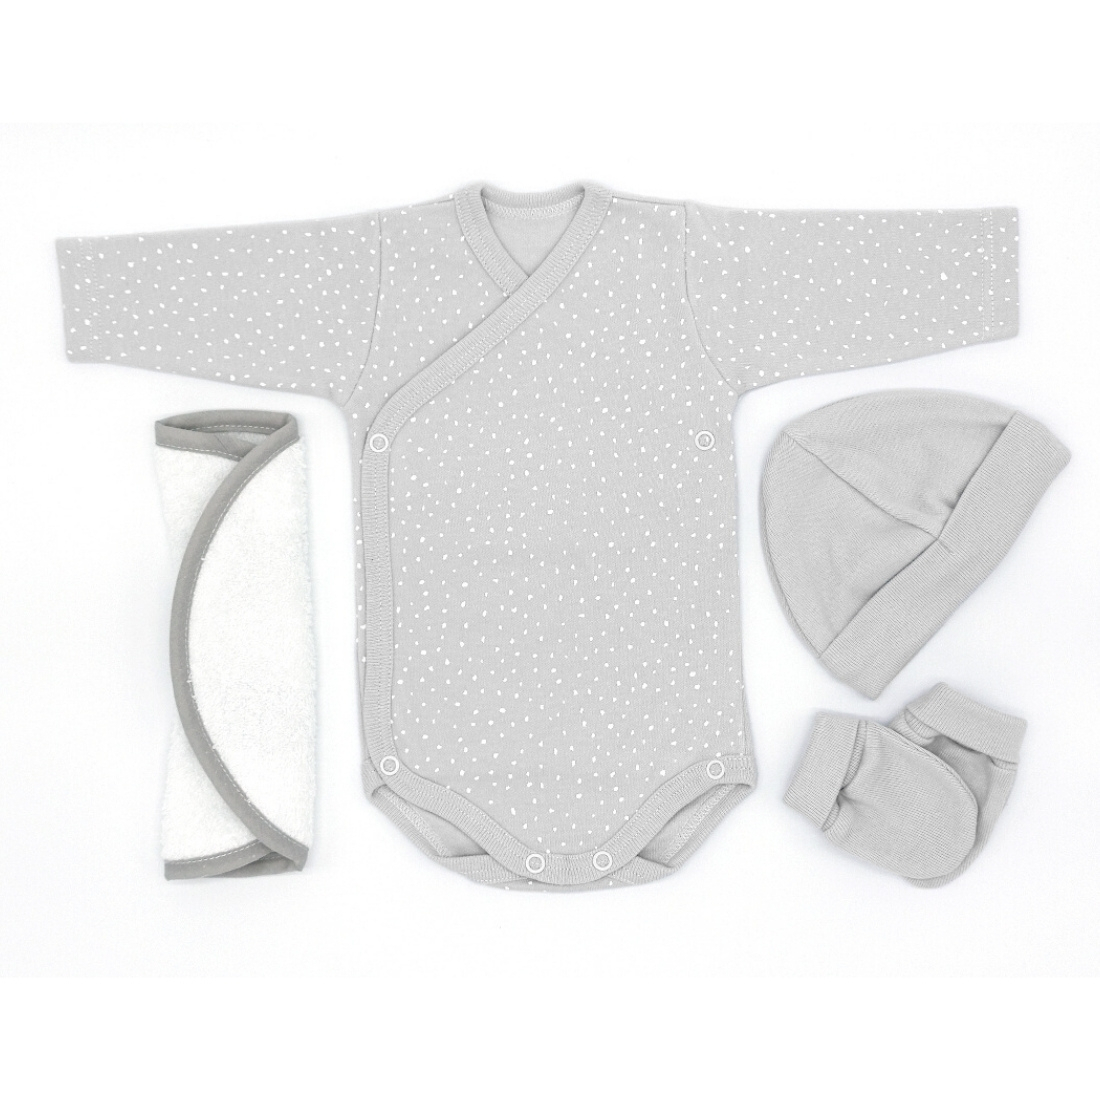 NB301CGRET0 | Conjunto body estampado gris